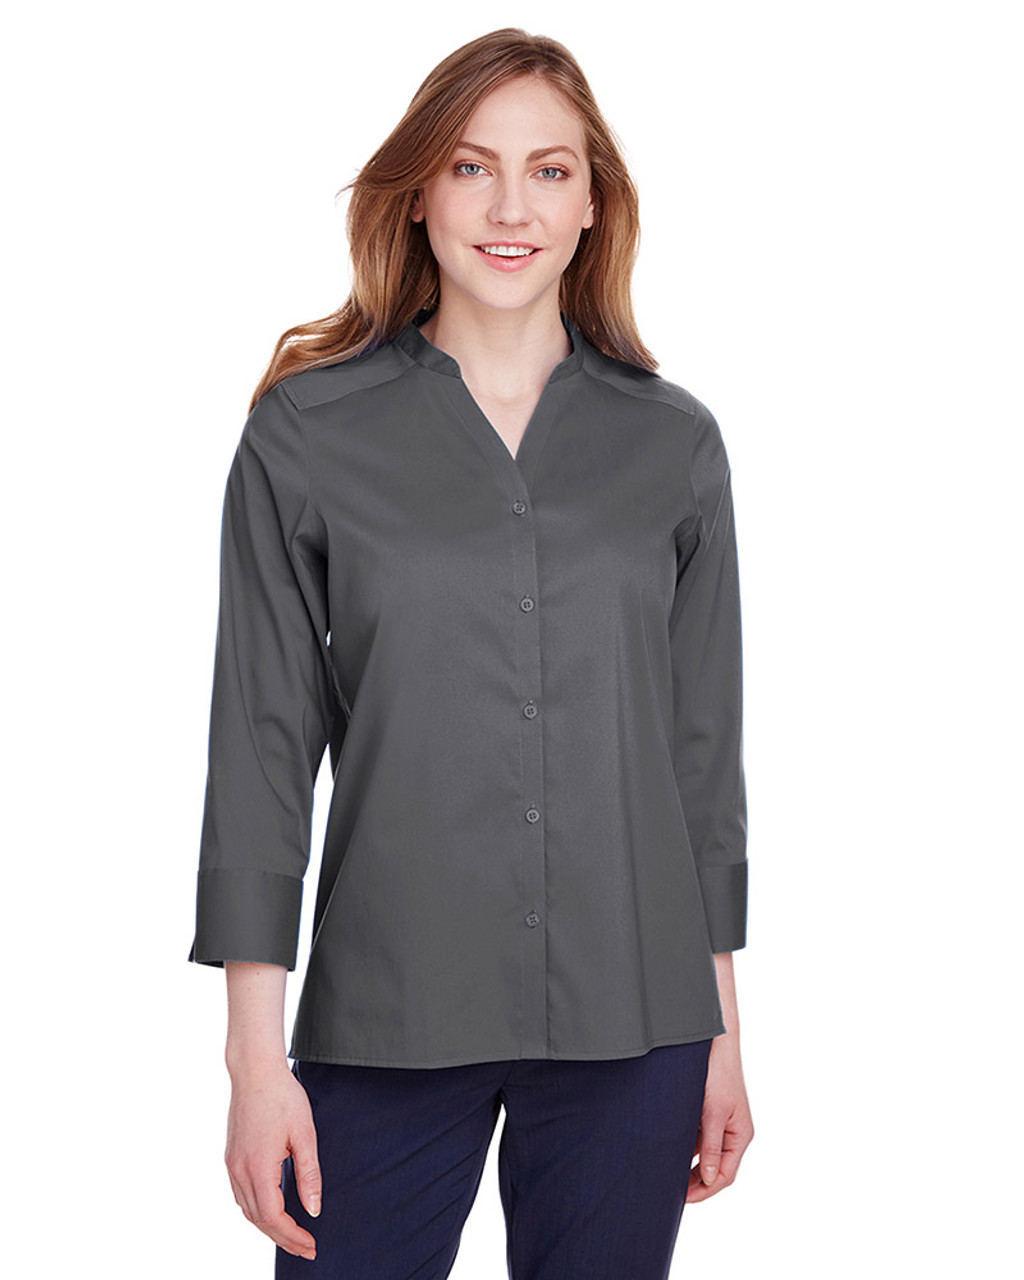 Graphite - DG560W Devon & Jones Ladies' Crown Collection™ Stretch Broadcloth 3/4 Sleeve Blouse | Blankclothing.ca